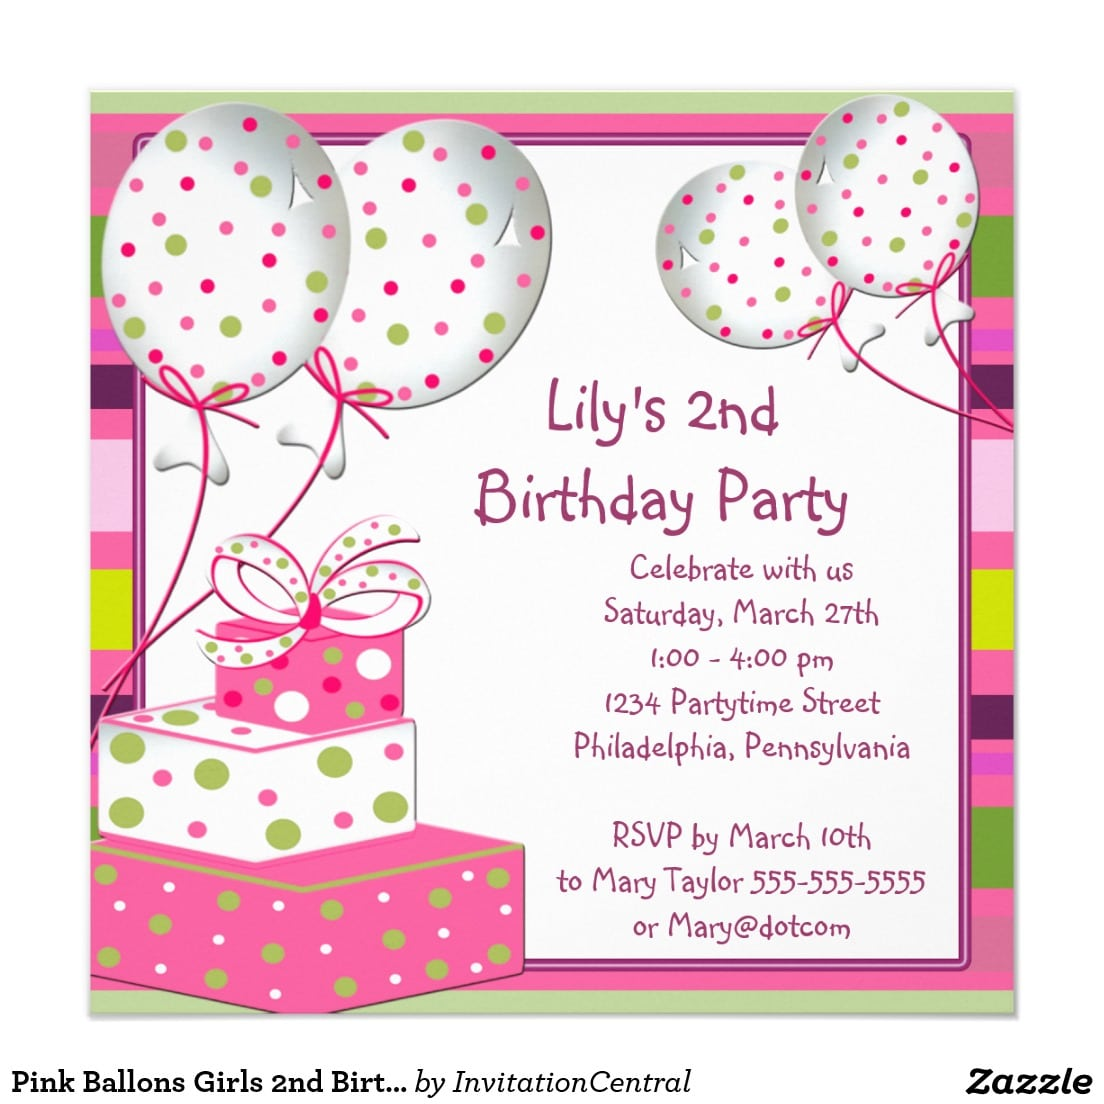 Birthday Party Cards Invitations Alluring Birthday Party Cards